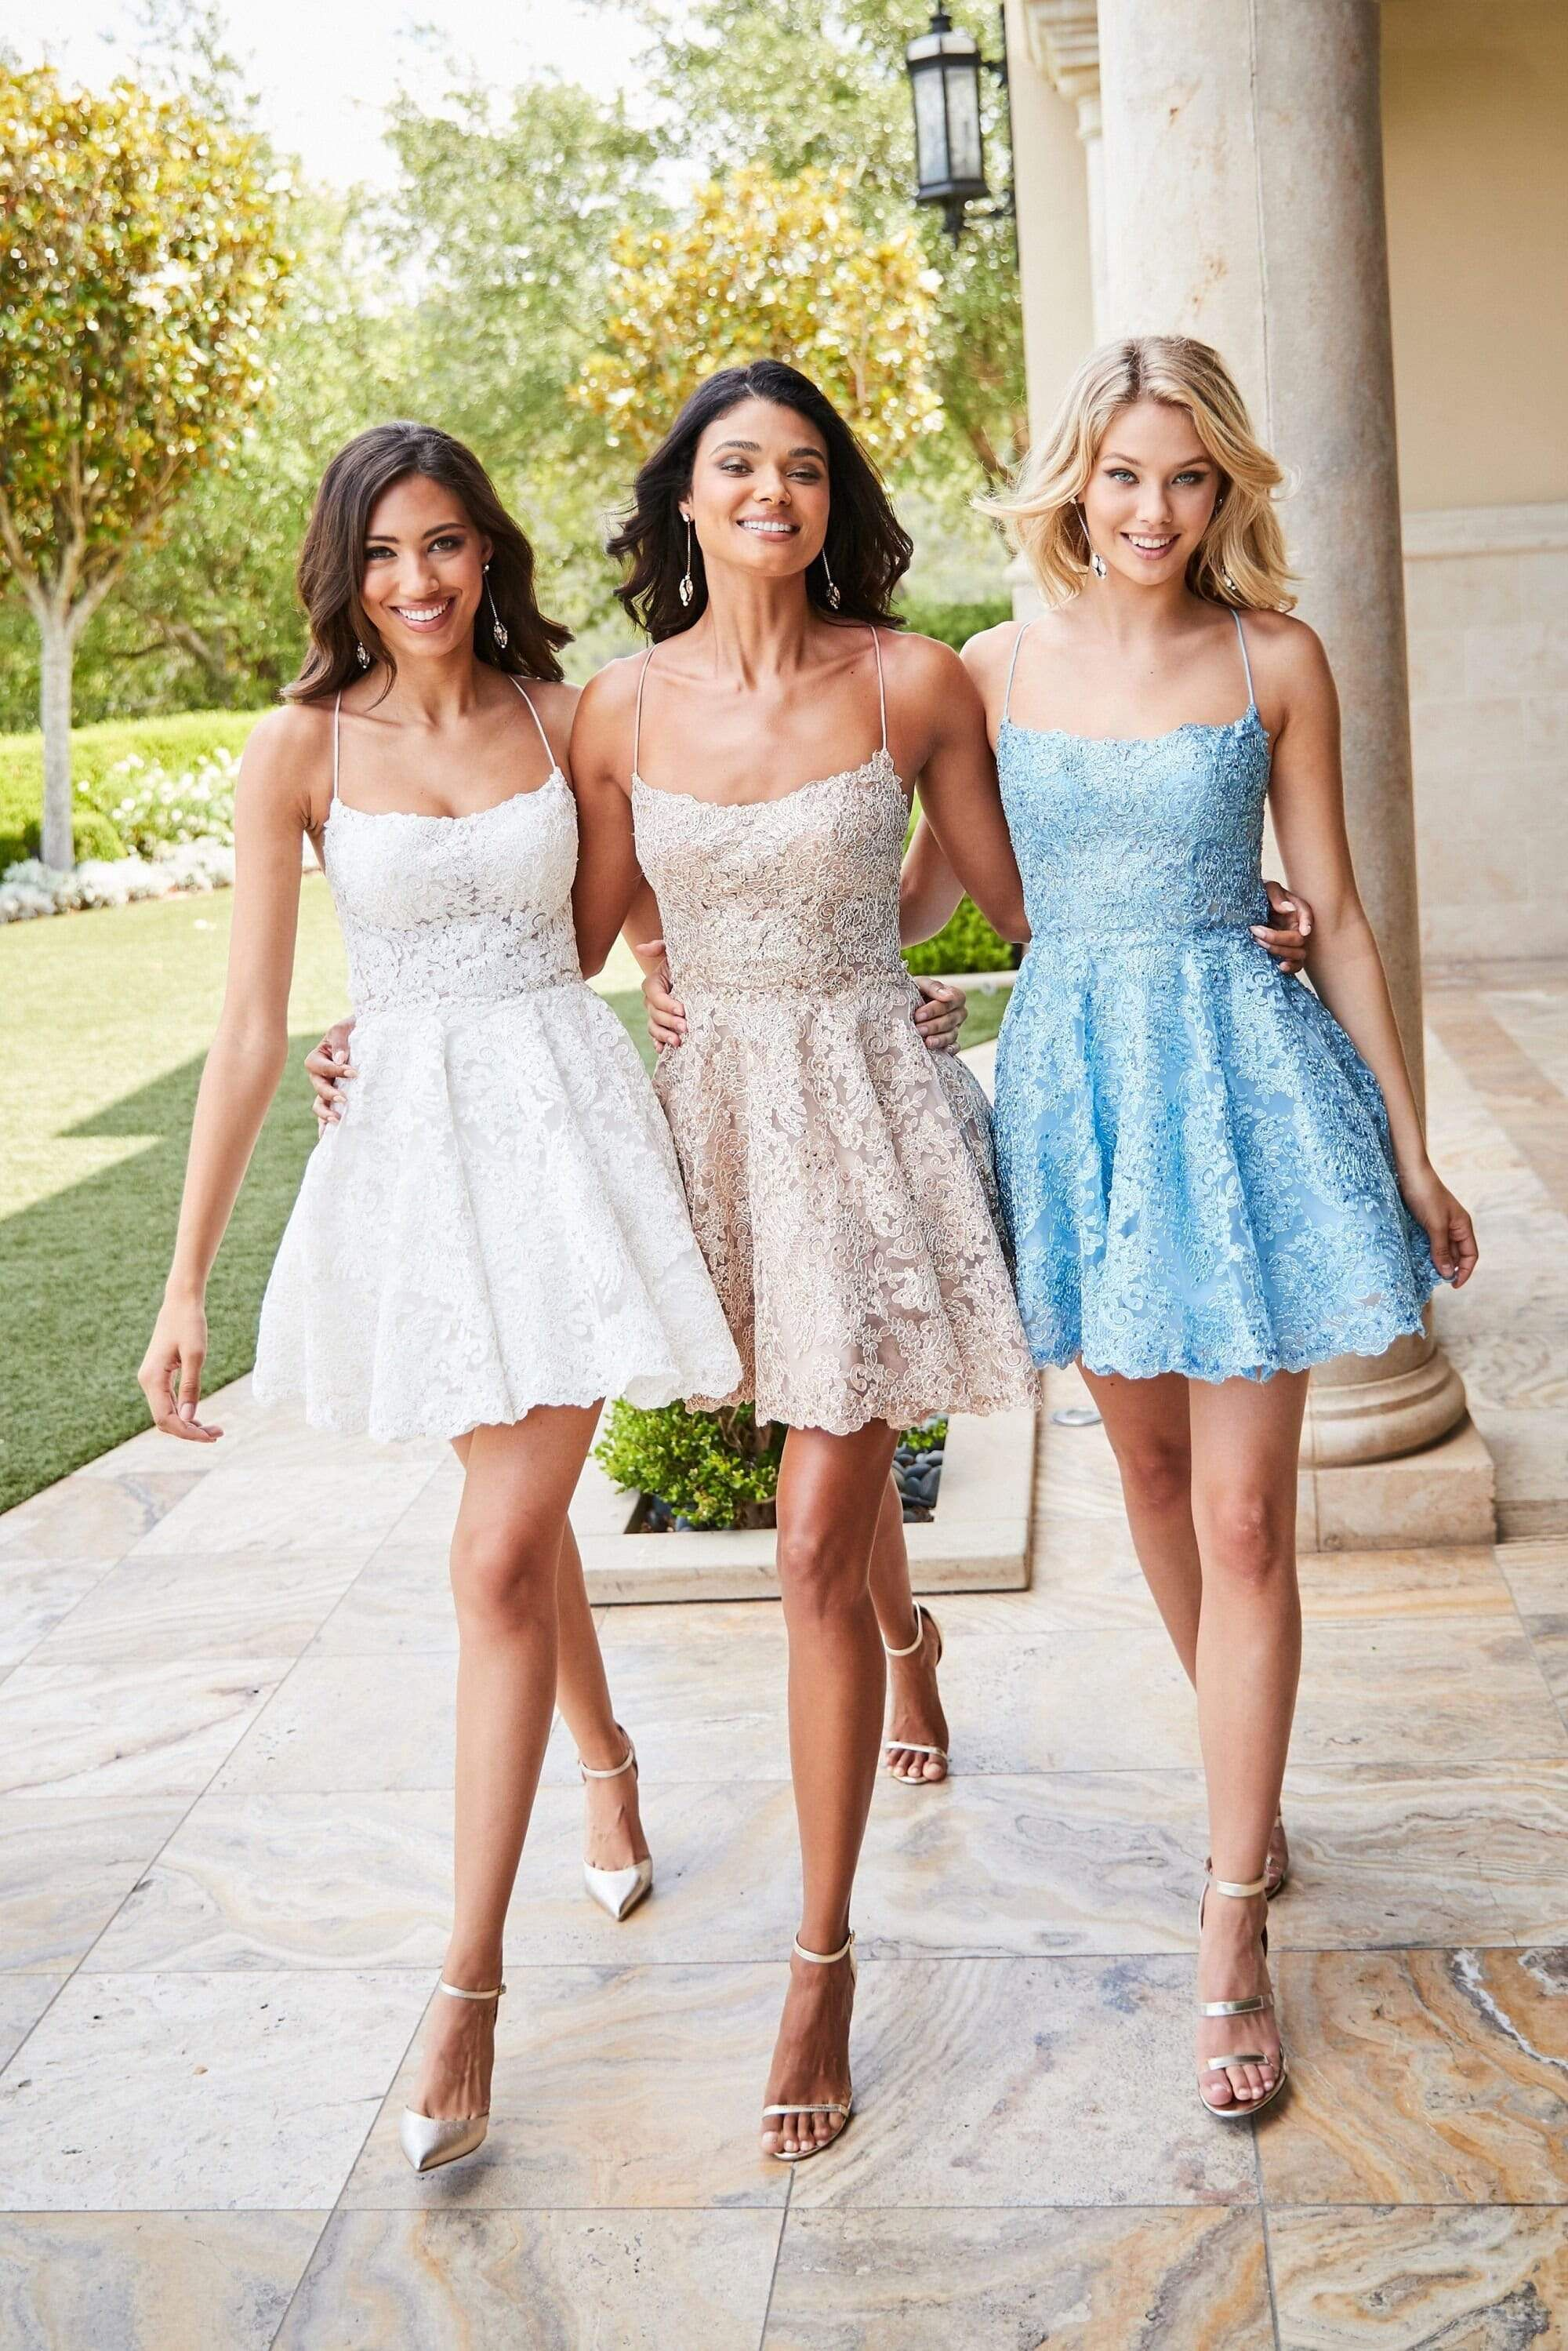 Look brilliant for the big party as you don this cocktail dress by Sherri Hill 52512. This Oh! so pretty metallic lace party dress charms with a scoop neckline, held by spaghetti straps that glides into the open back with strappy details supporting the fitted bodice. The dress features a mid-thigh A-line skirt. Make a memorable splash at your upscale evening as you mesmerize the night in this Sherri Hill short dress. Style: sher_52512 Details: Metallic Lace, Beaded, Fit and flare, Bare back, Lac